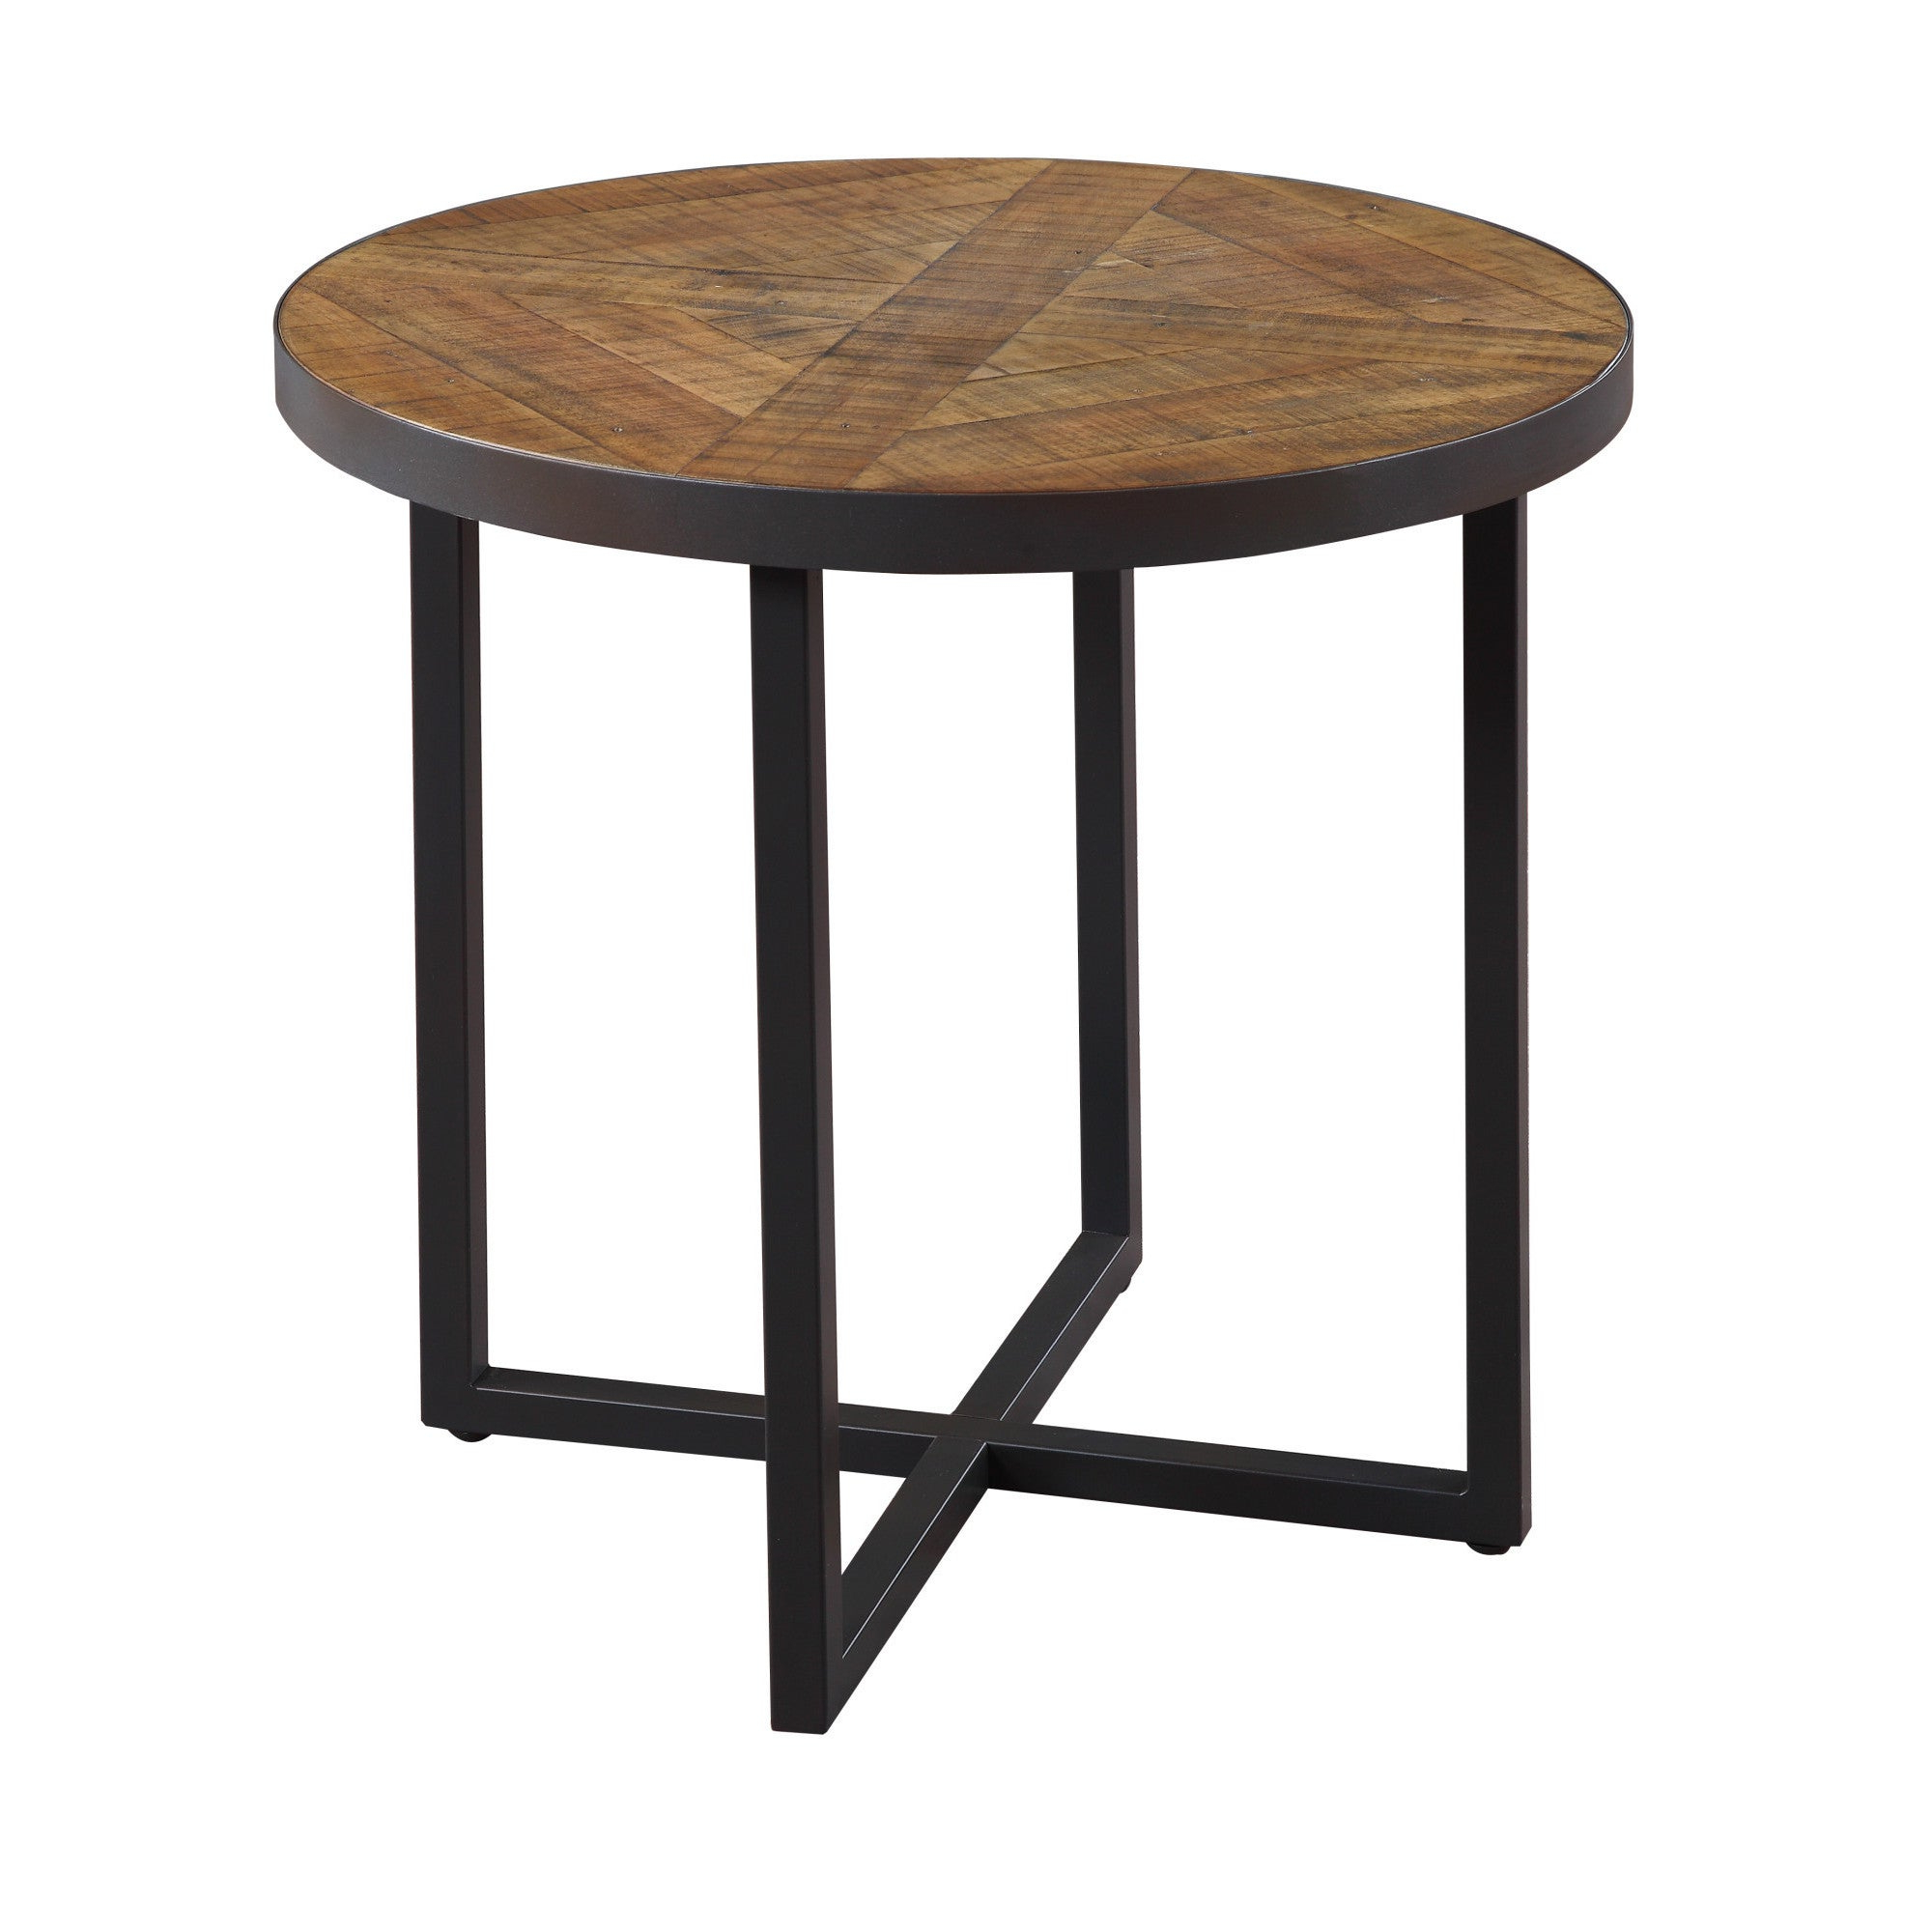 Details About Carbon Loft Moscovitz Rustic Poplar Round End Table Brown In Best And Newest Carbon Loft Enjolras Wood Steel Coffee Tables (View 12 of 20)